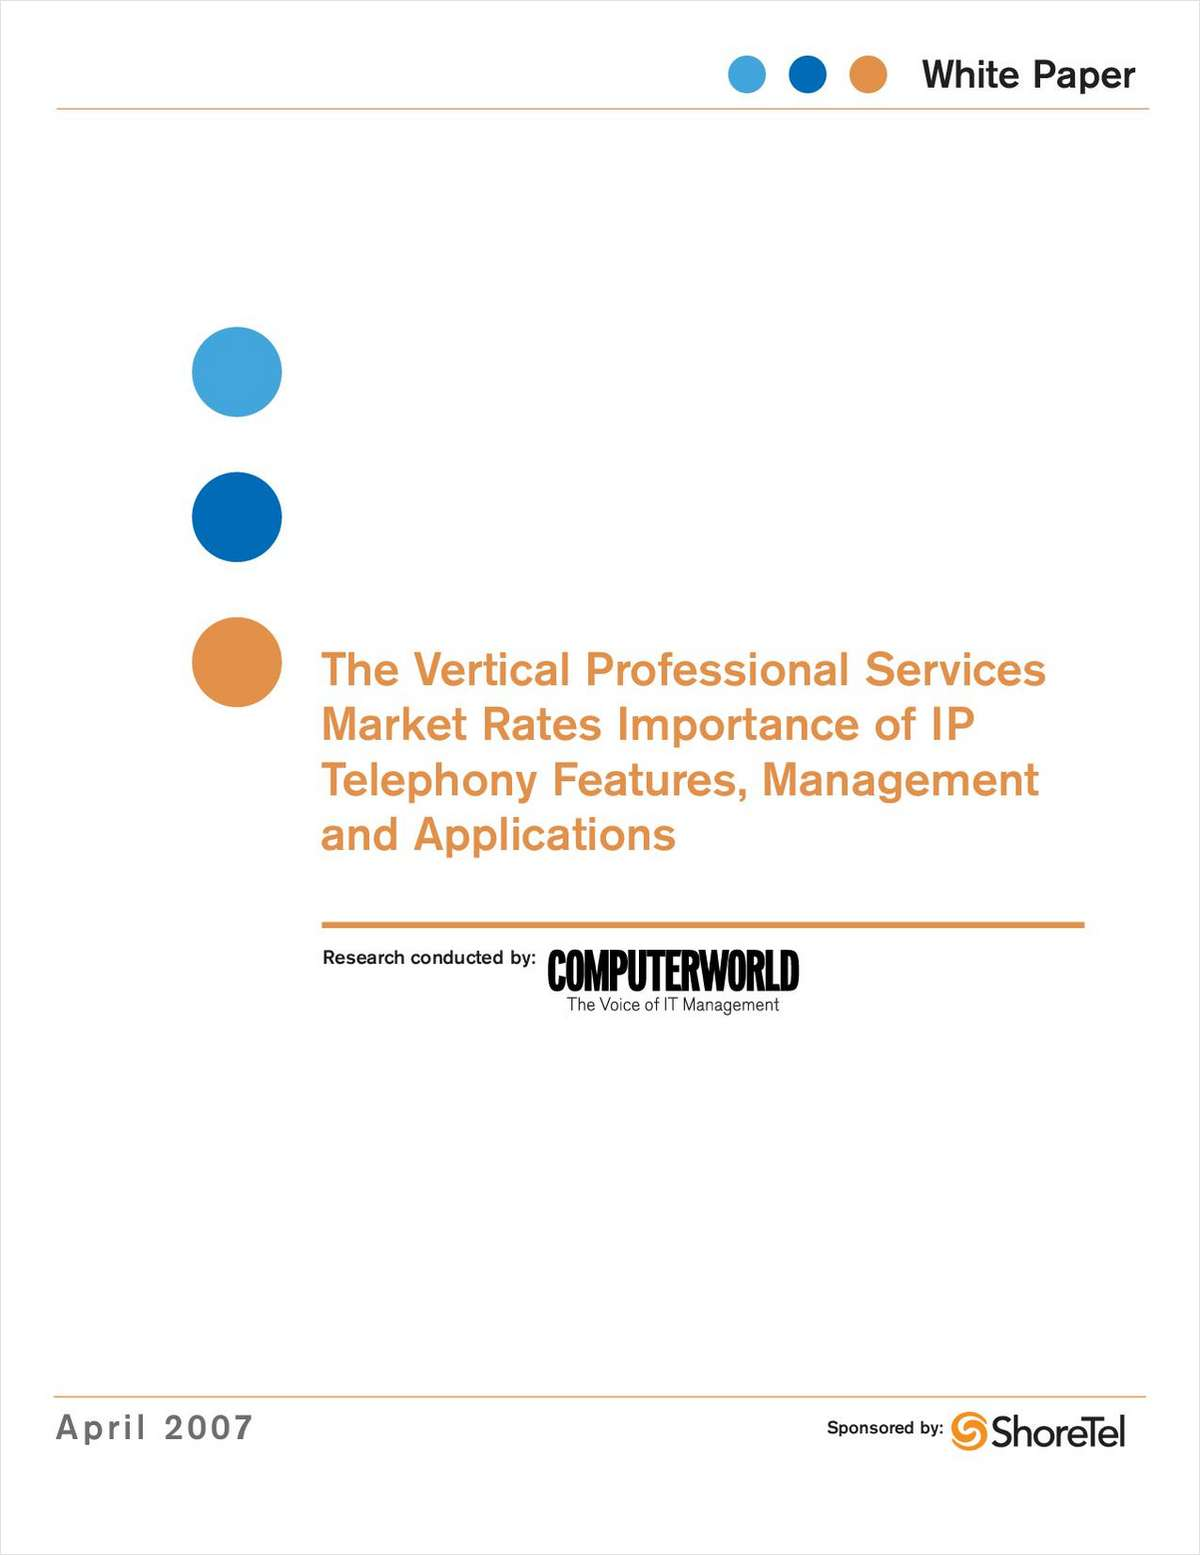 Vertical Professional Services Market Rates Importance of IP Telephony Features, Management and Applications